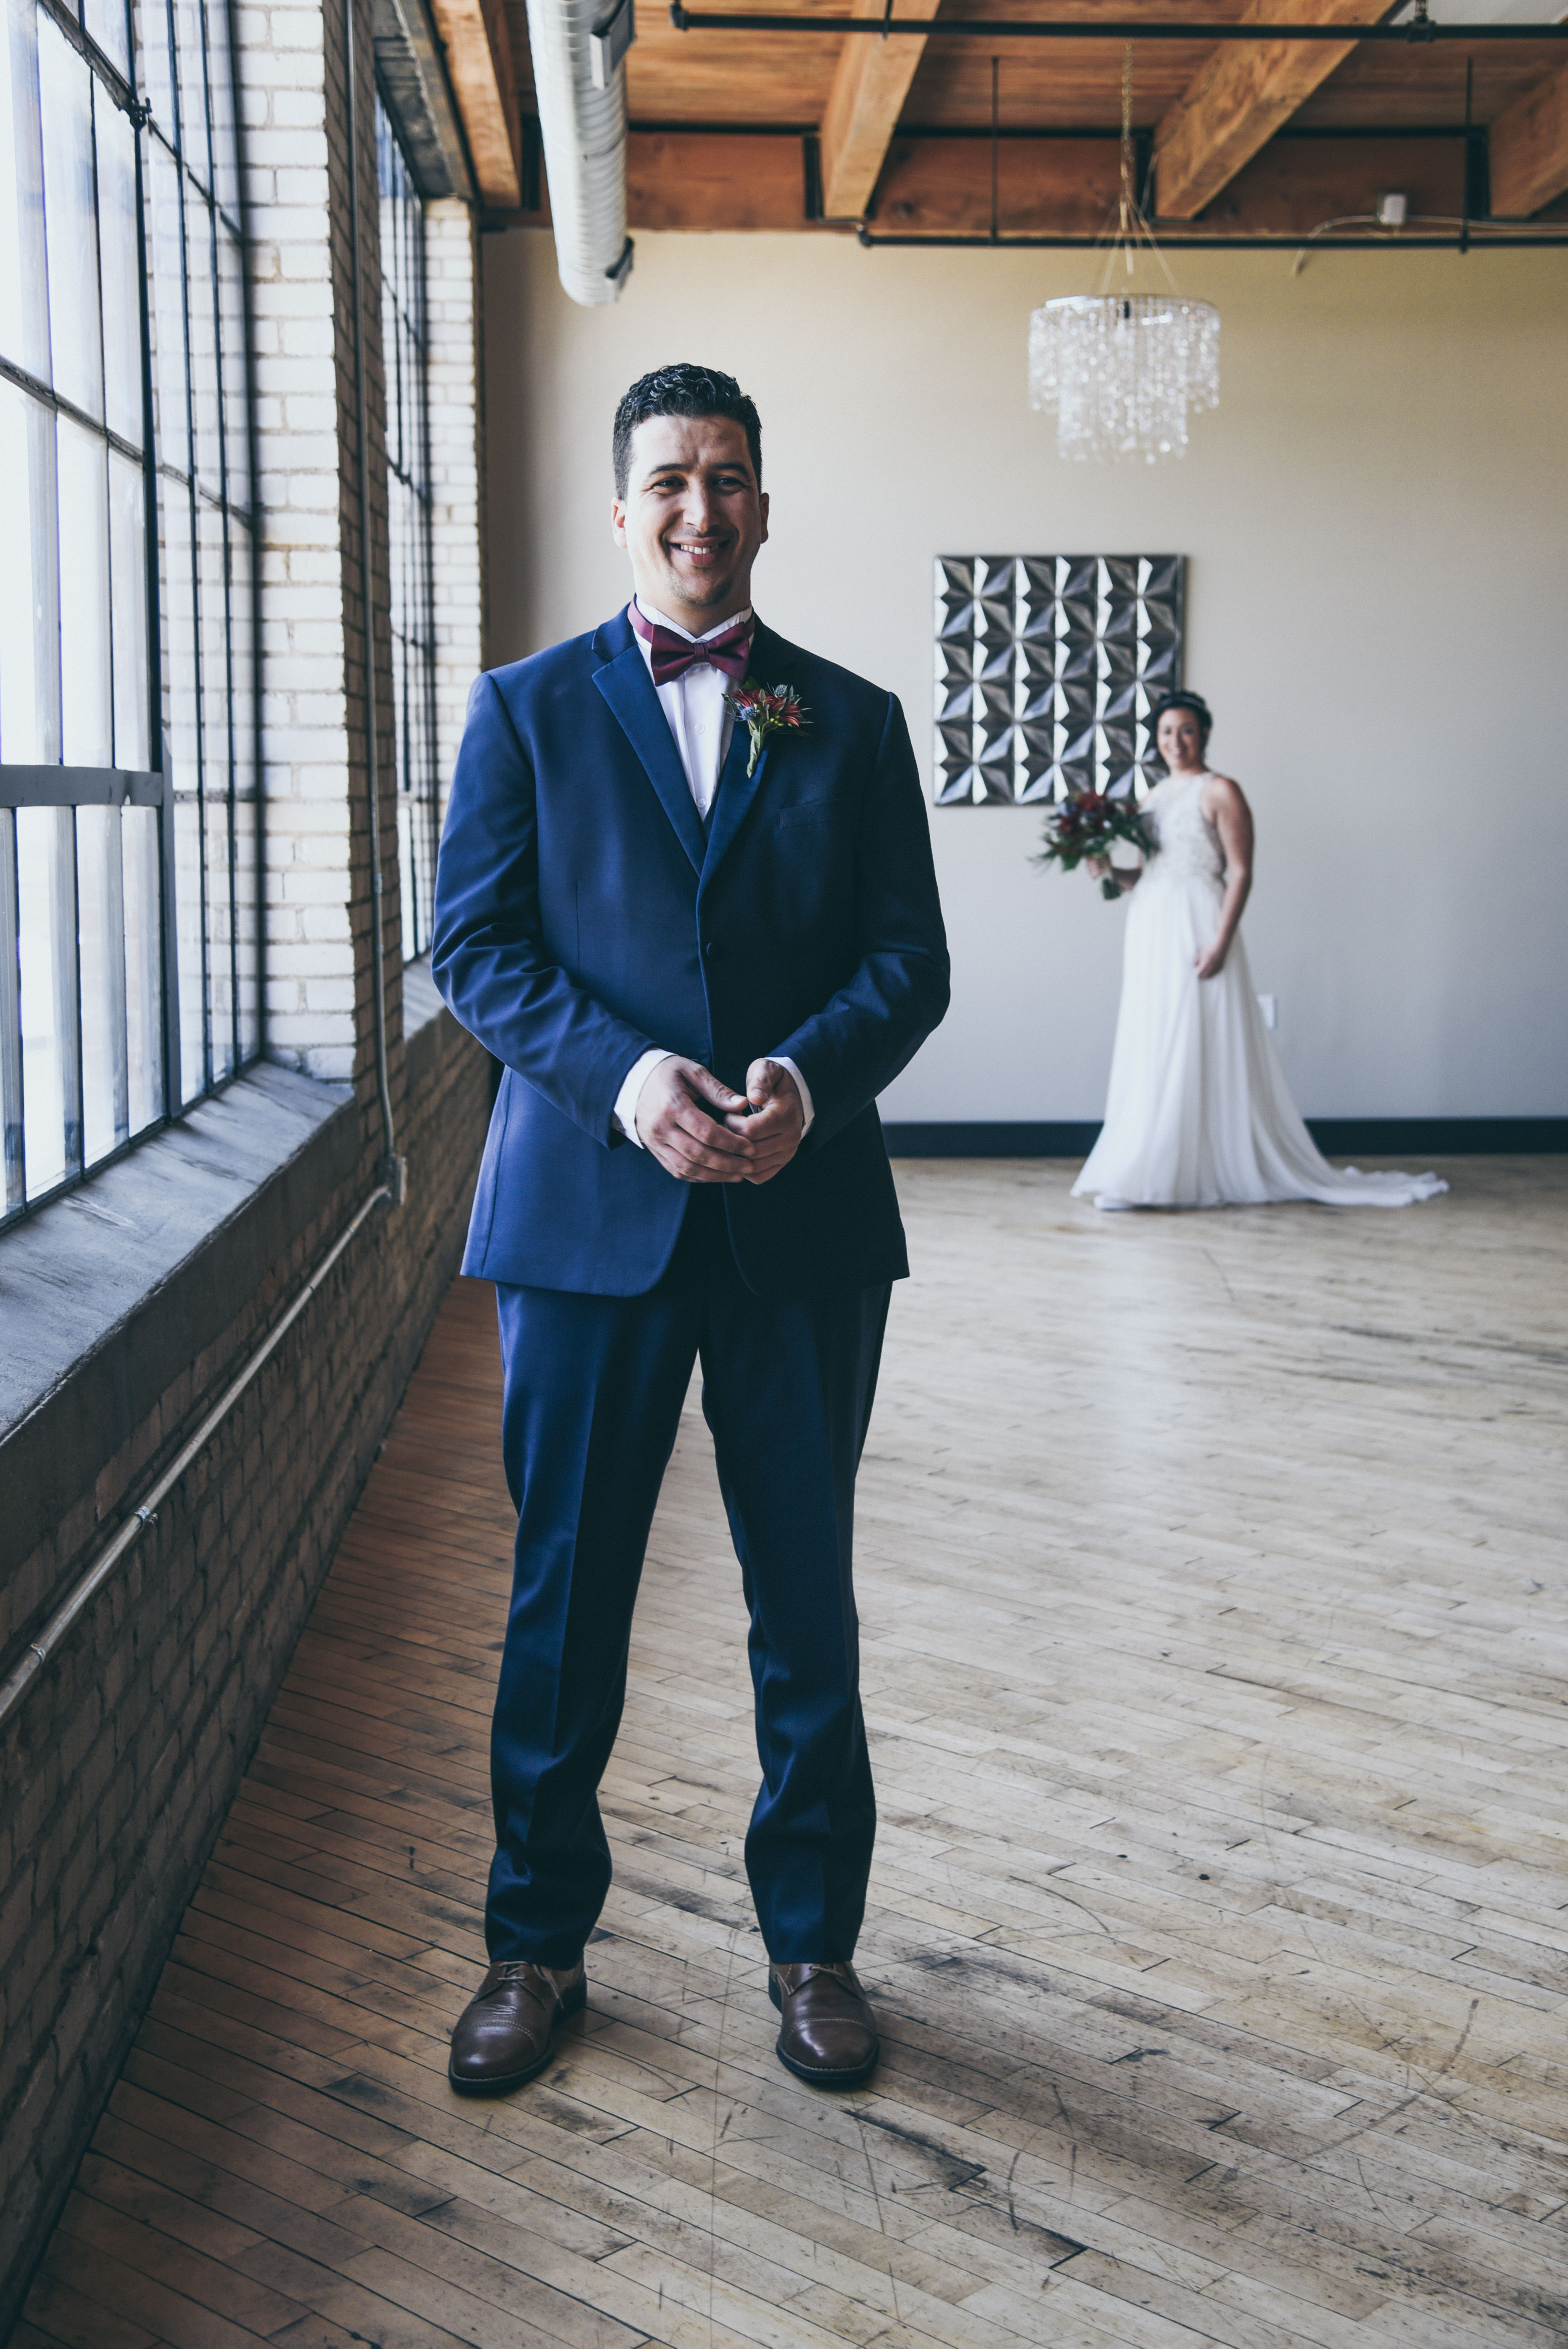 bride walking up behind groom during first look at their wedding